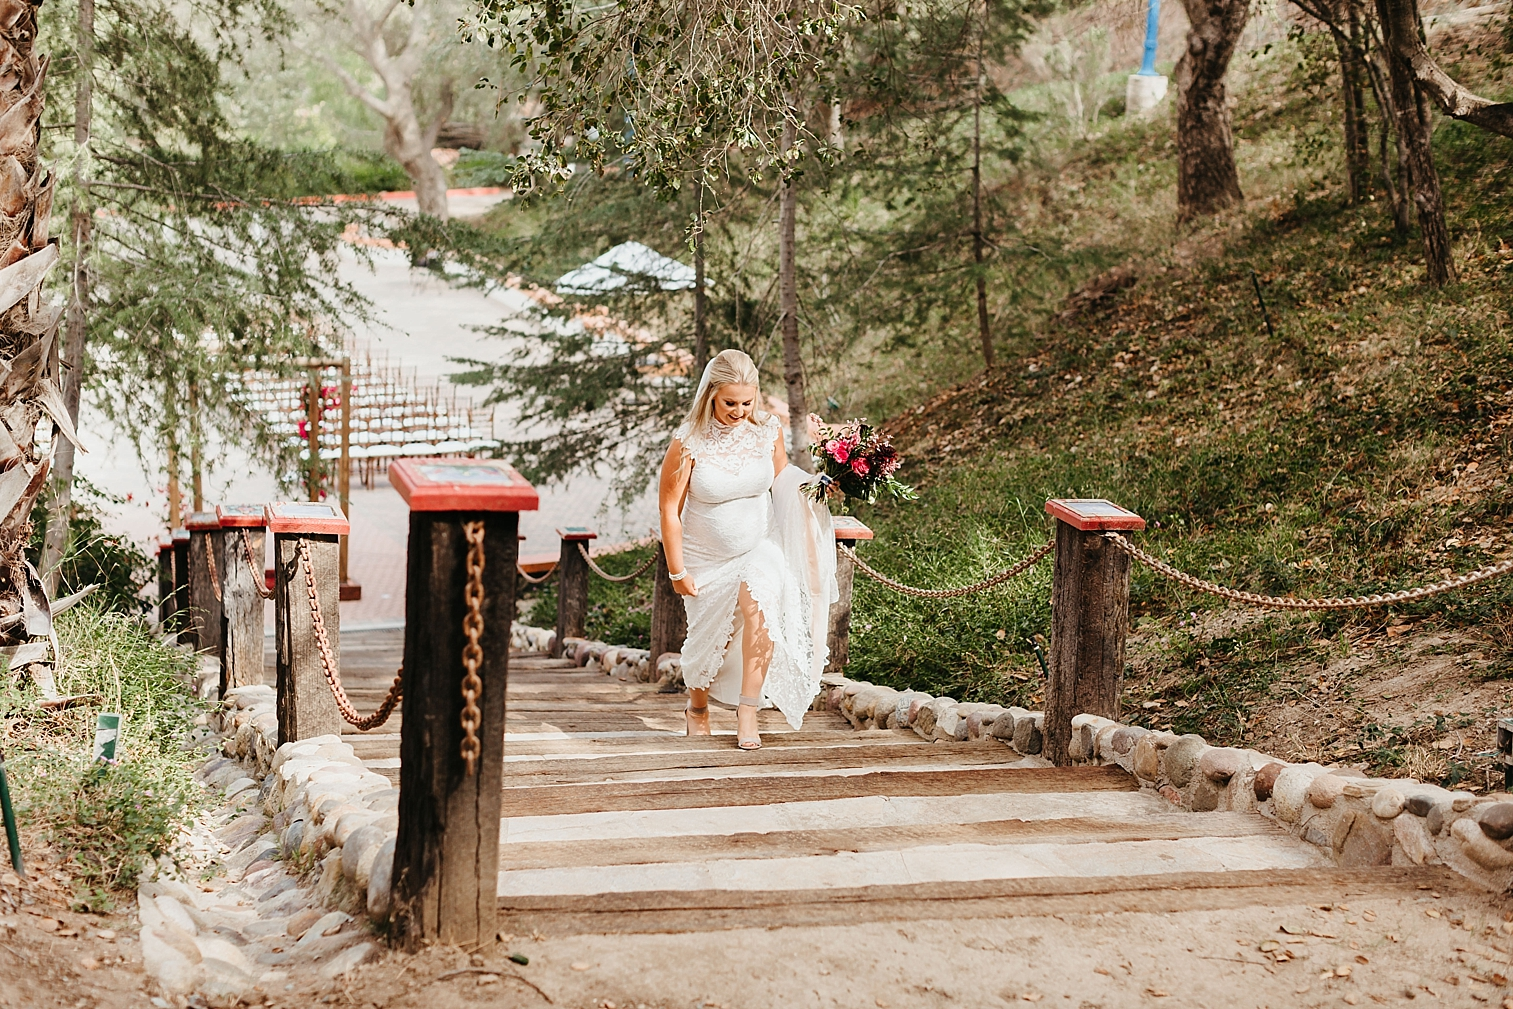 Rancho-Las-Lomas-Wedding-41.jpg